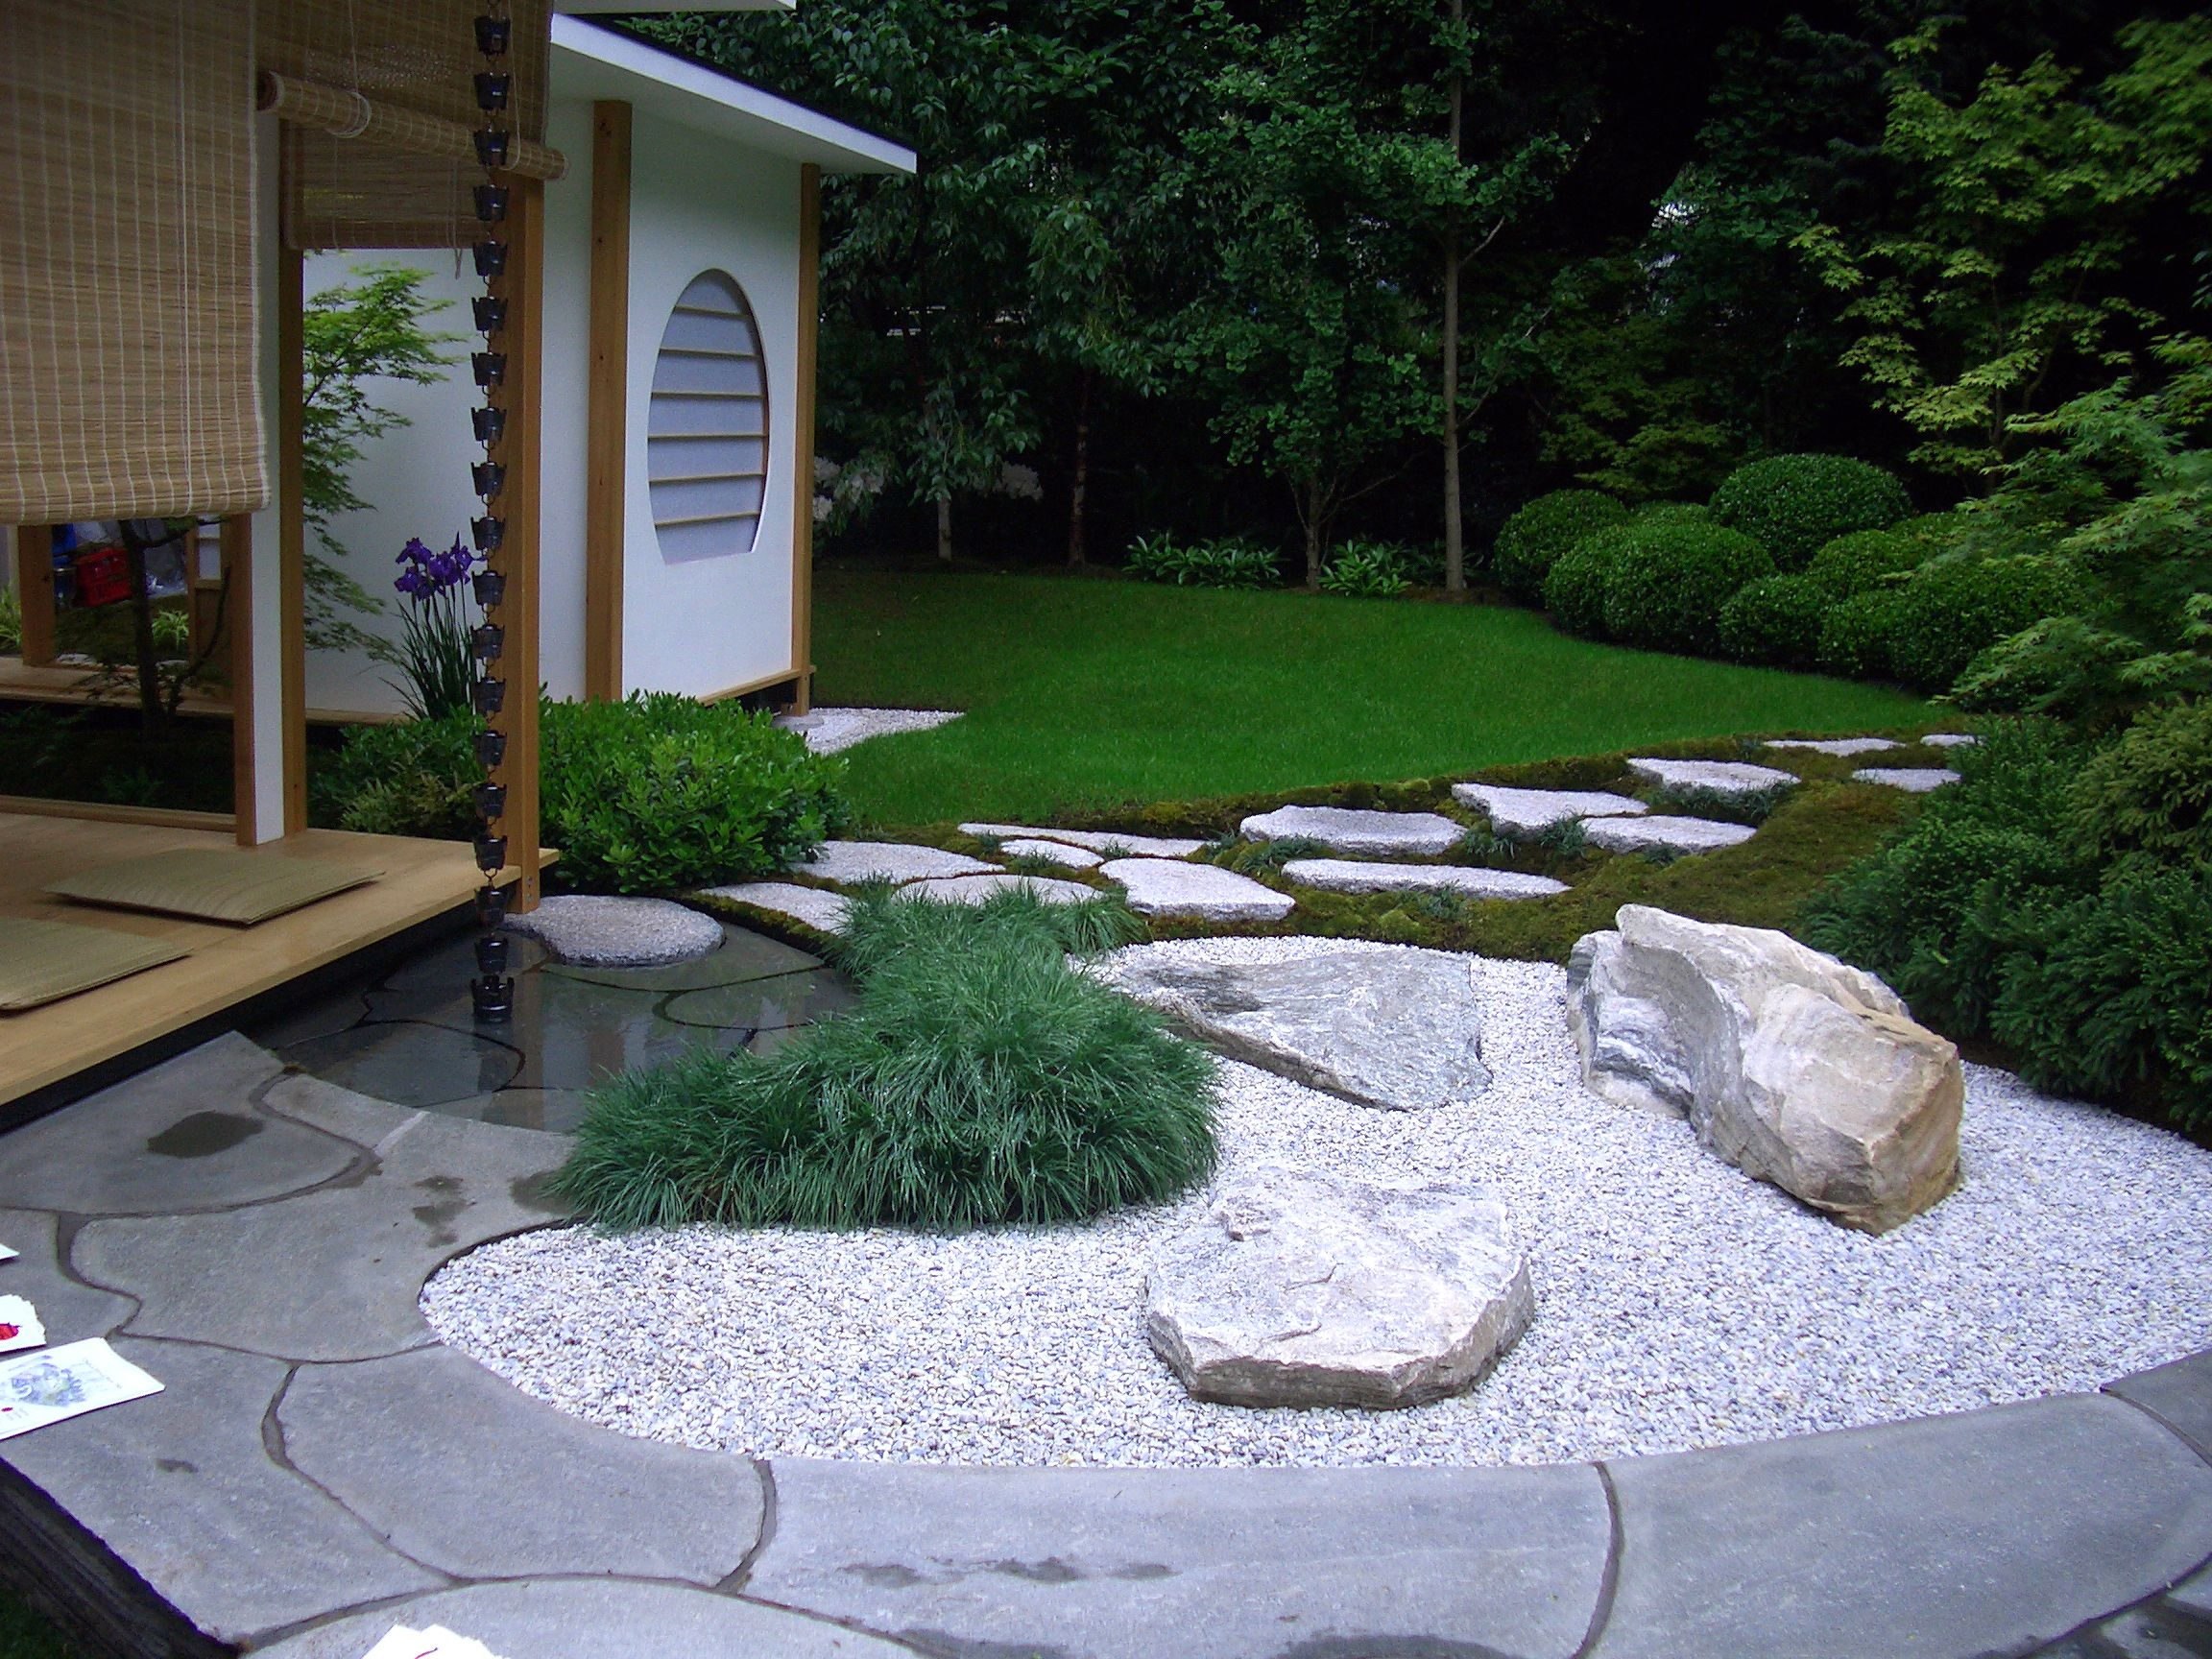 Oppdal Quartzite Paving with Silver Grey Granite Stepping Stones & Meadowgrass Marble Aggregate. Gold medal winner at The Chelsea Flower Show 2004. Designed by Maureen Busby and built by members of the Japanese Garden Society.